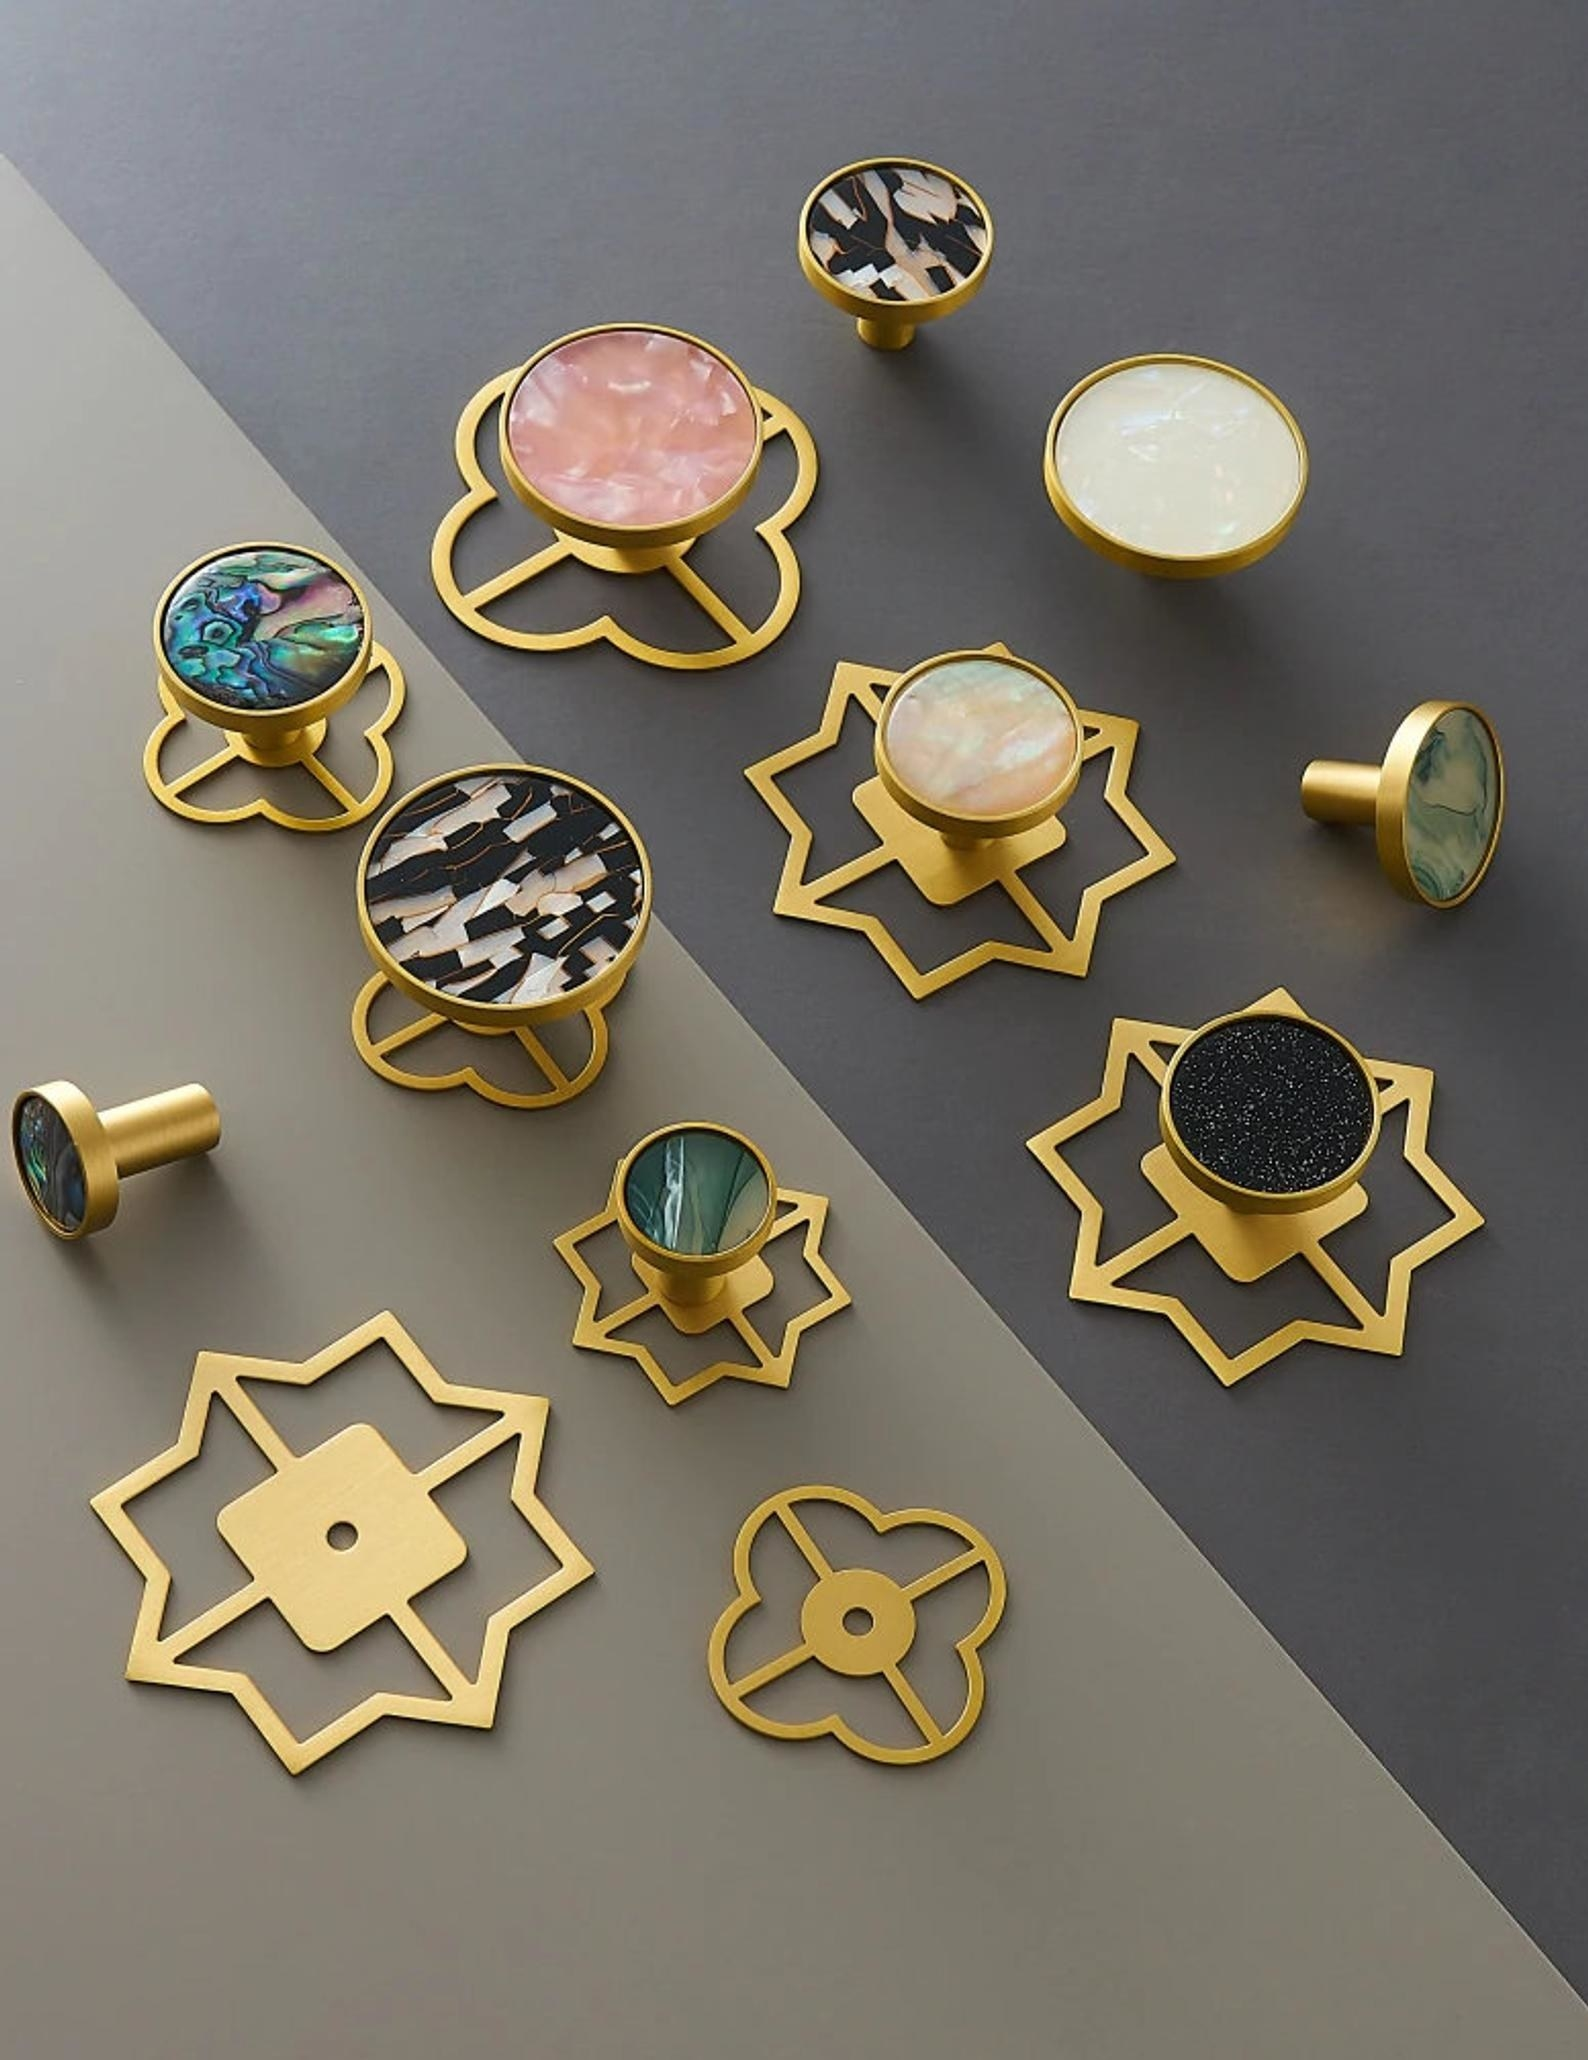 doorknobs that look more like gold that have bases in various shapes (like stars) and the handle part has different colors like pink marble, black, and green marble